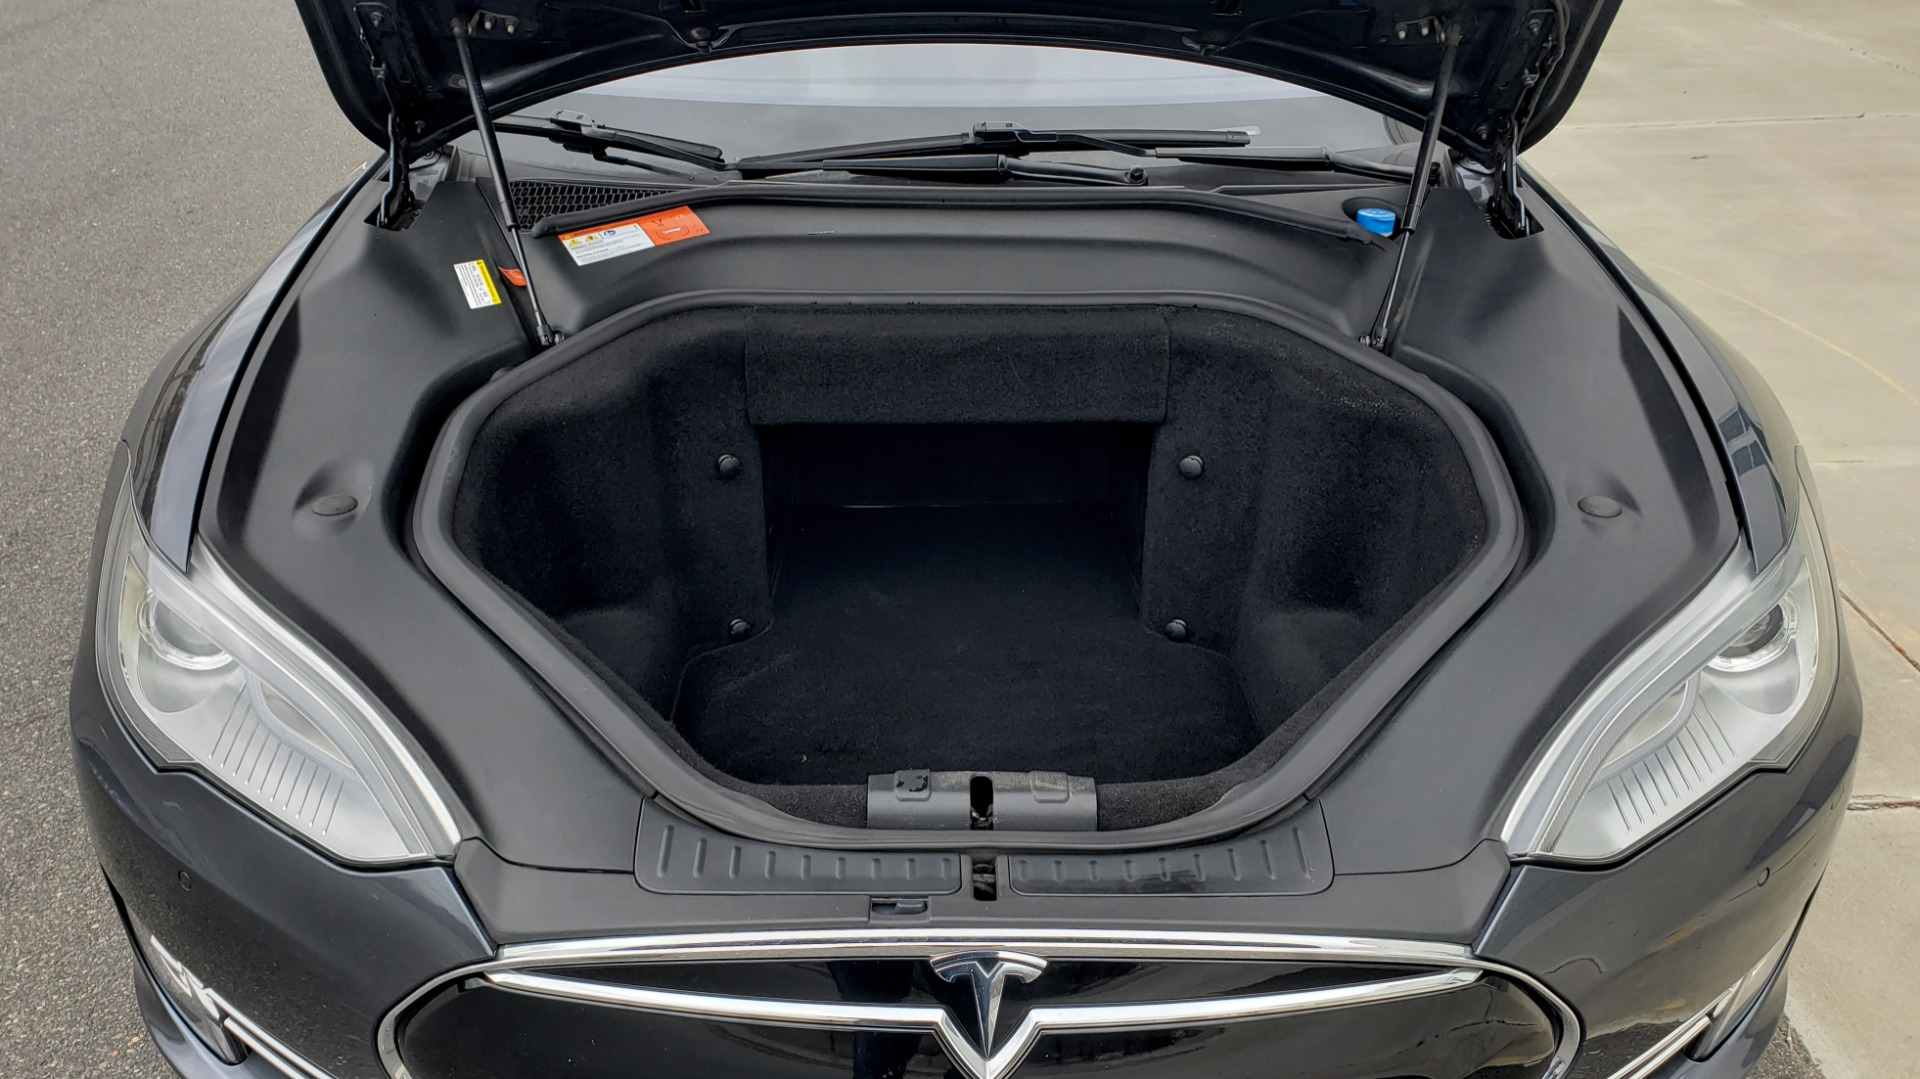 Used 2014 Tesla MODEL S 60 kWh BATTERY / TECH / NAV / SUBZERO / SUNROOF / REARVIEW for sale Sold at Formula Imports in Charlotte NC 28227 11